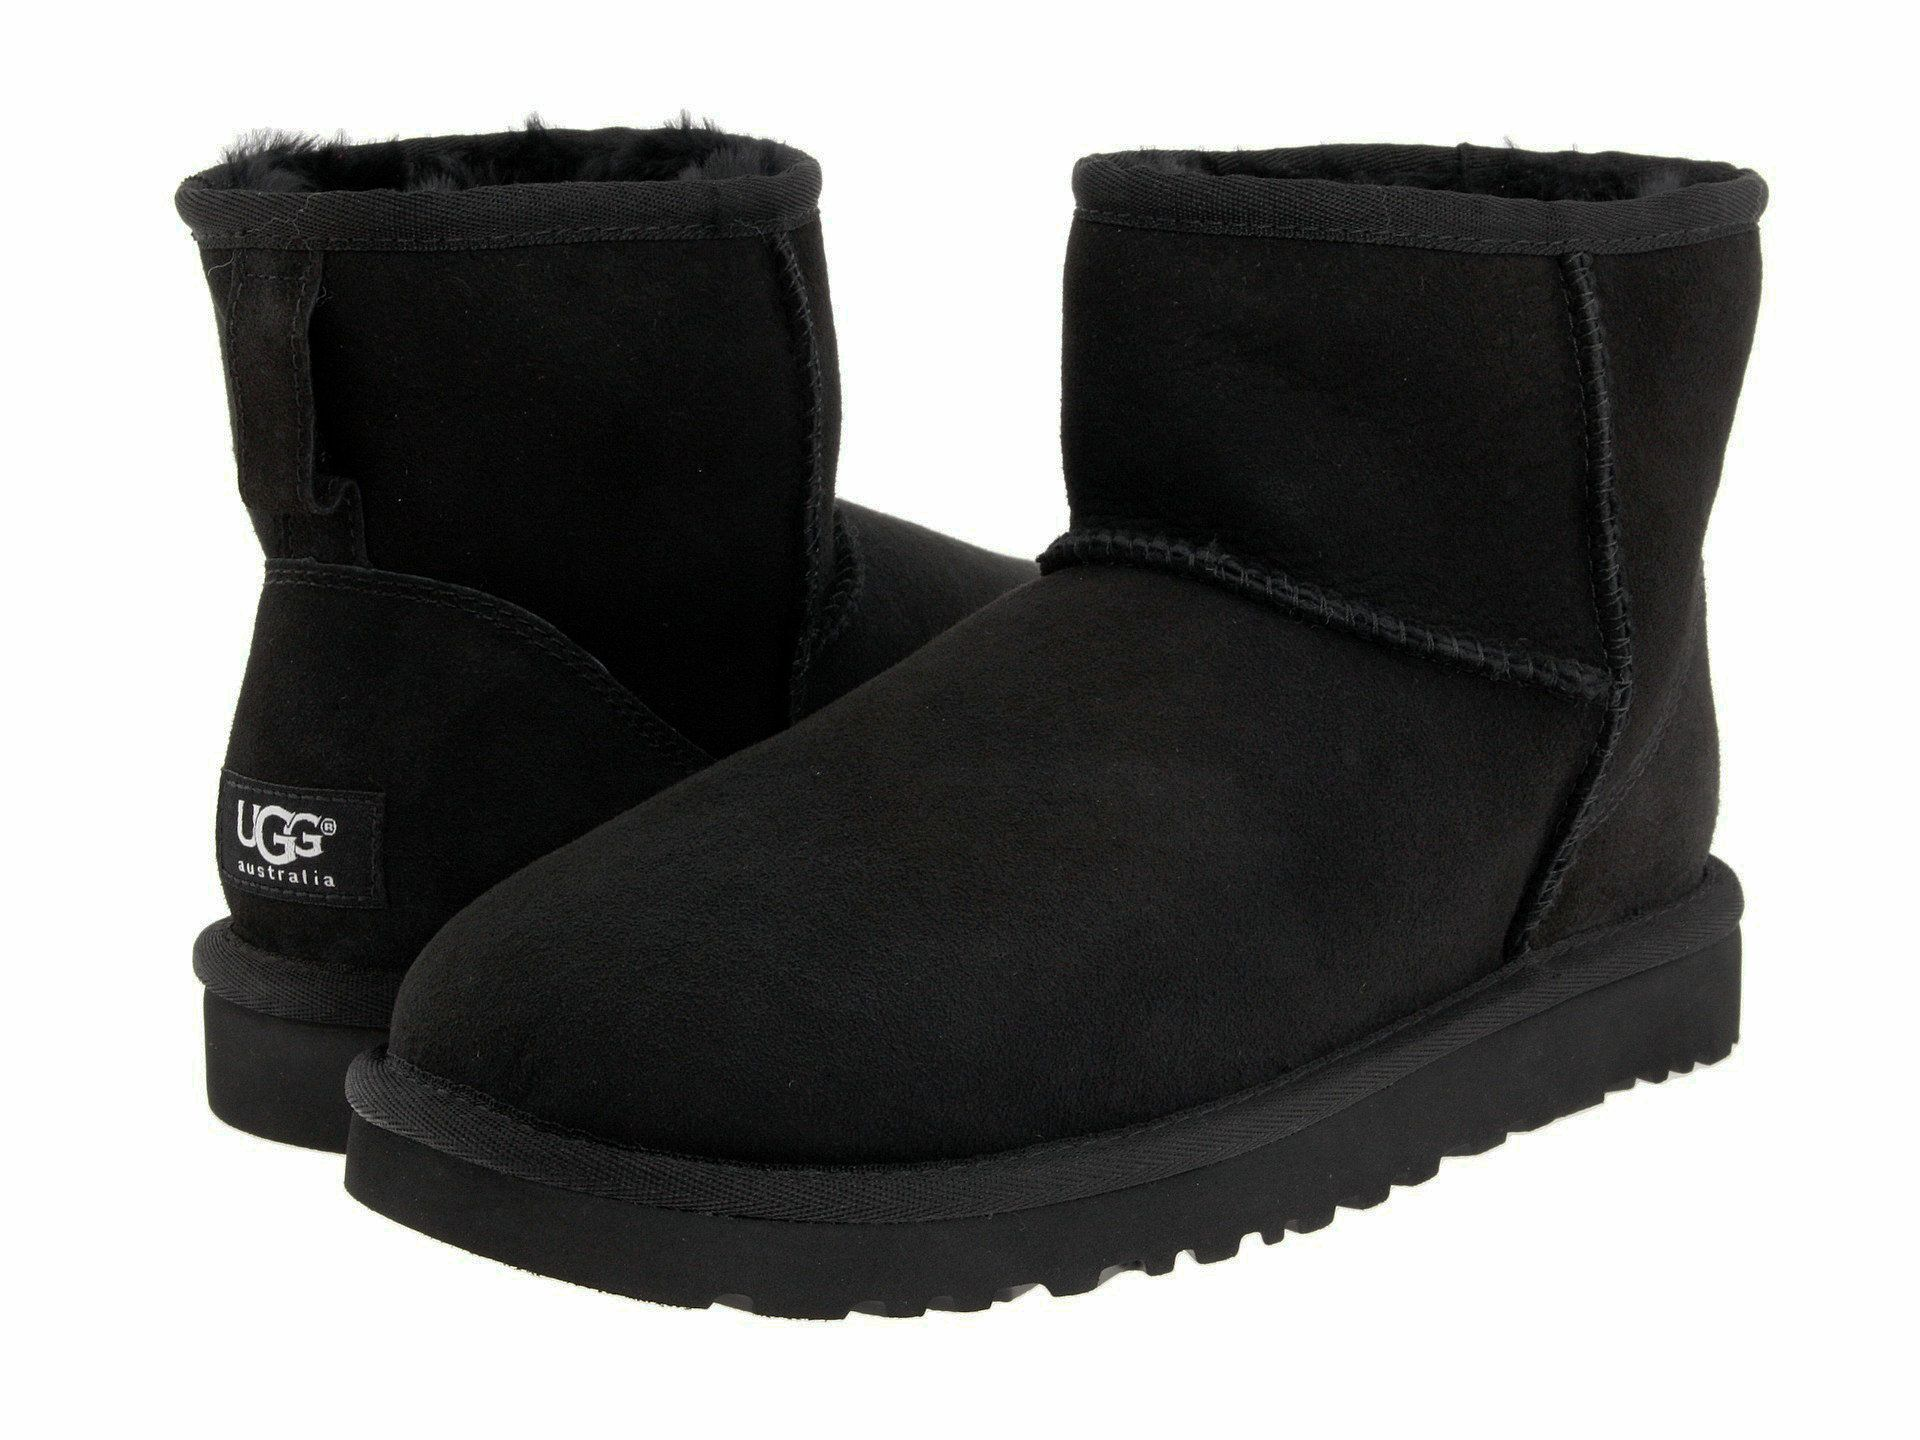 2b1f62b6a05 ugg boots online store For Christmas Gift And Warm in the Winter ...